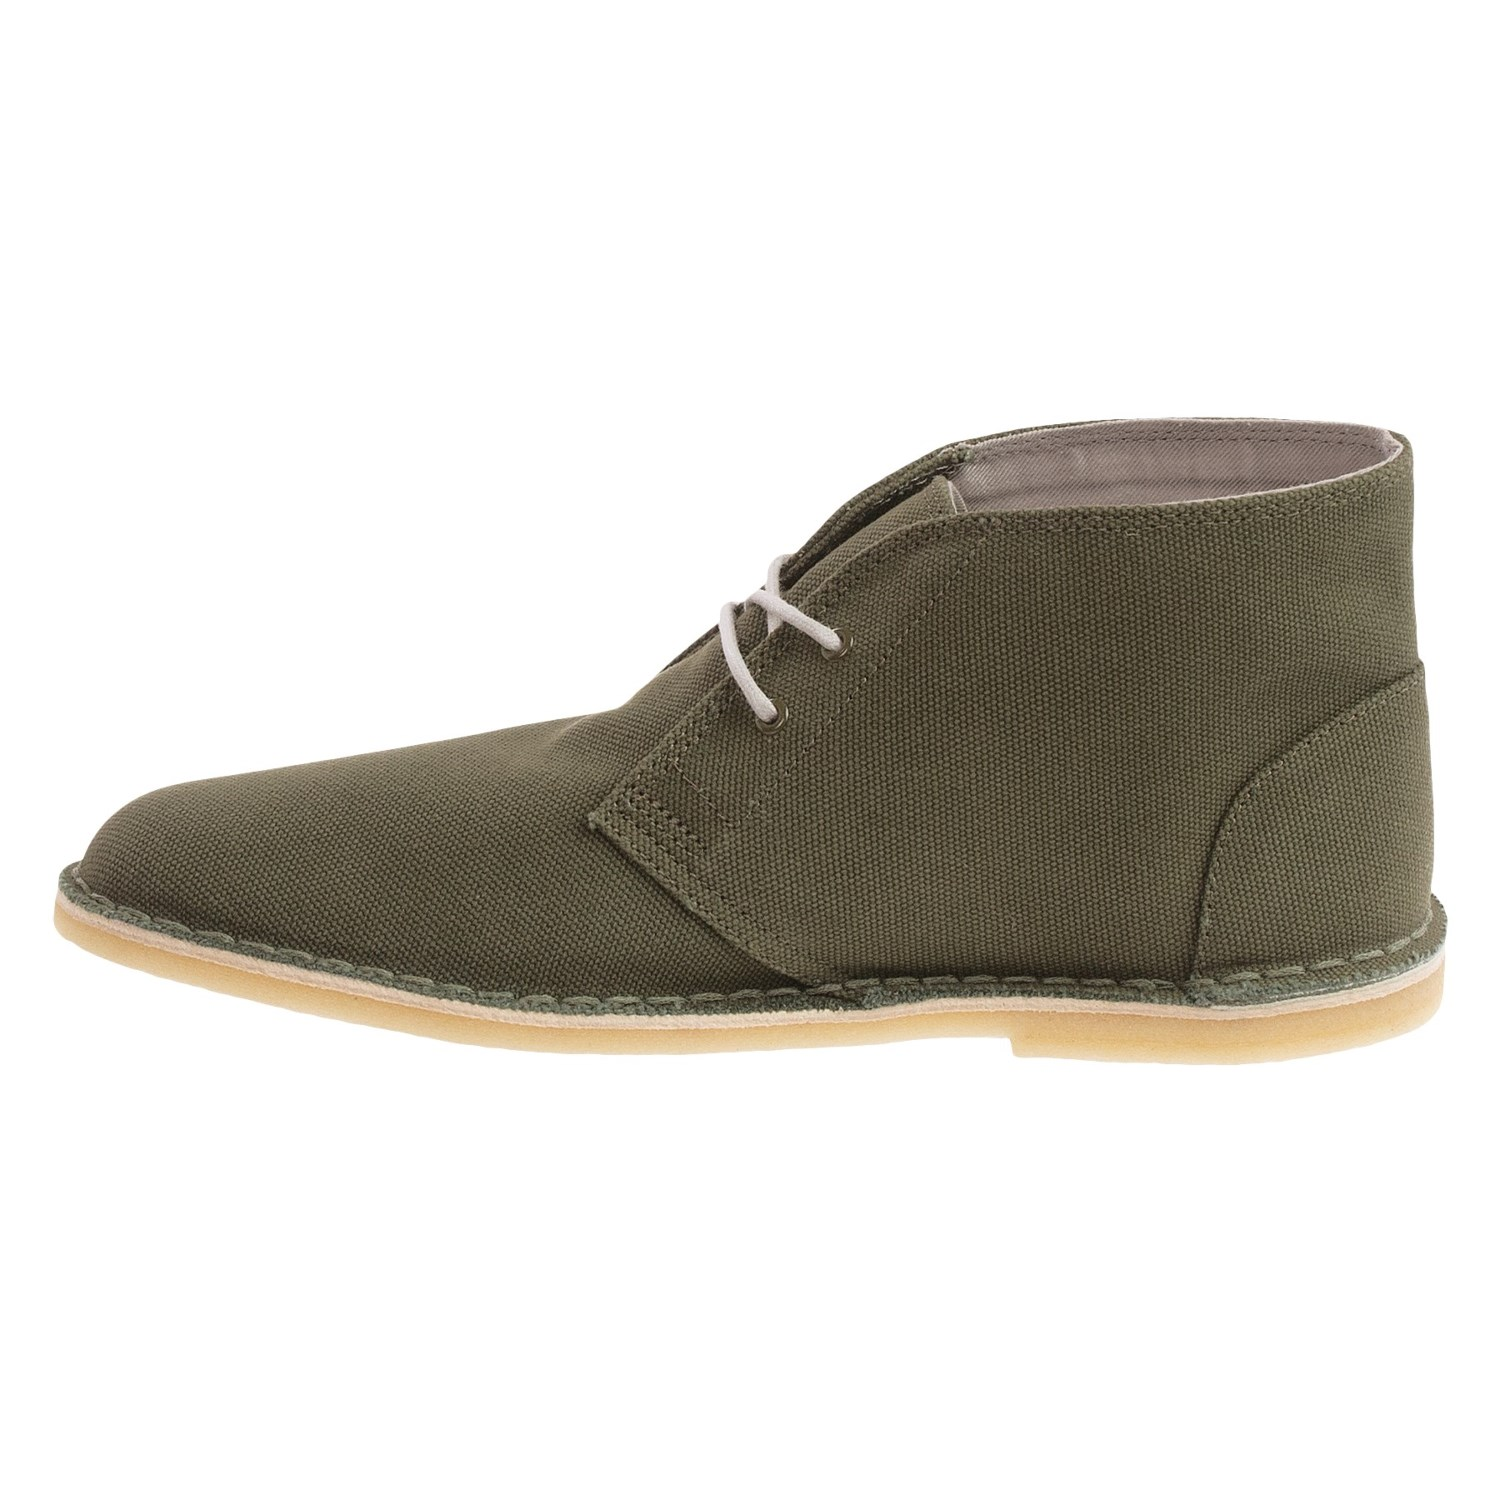 9735y 5 clarks jink desert boots canvas for